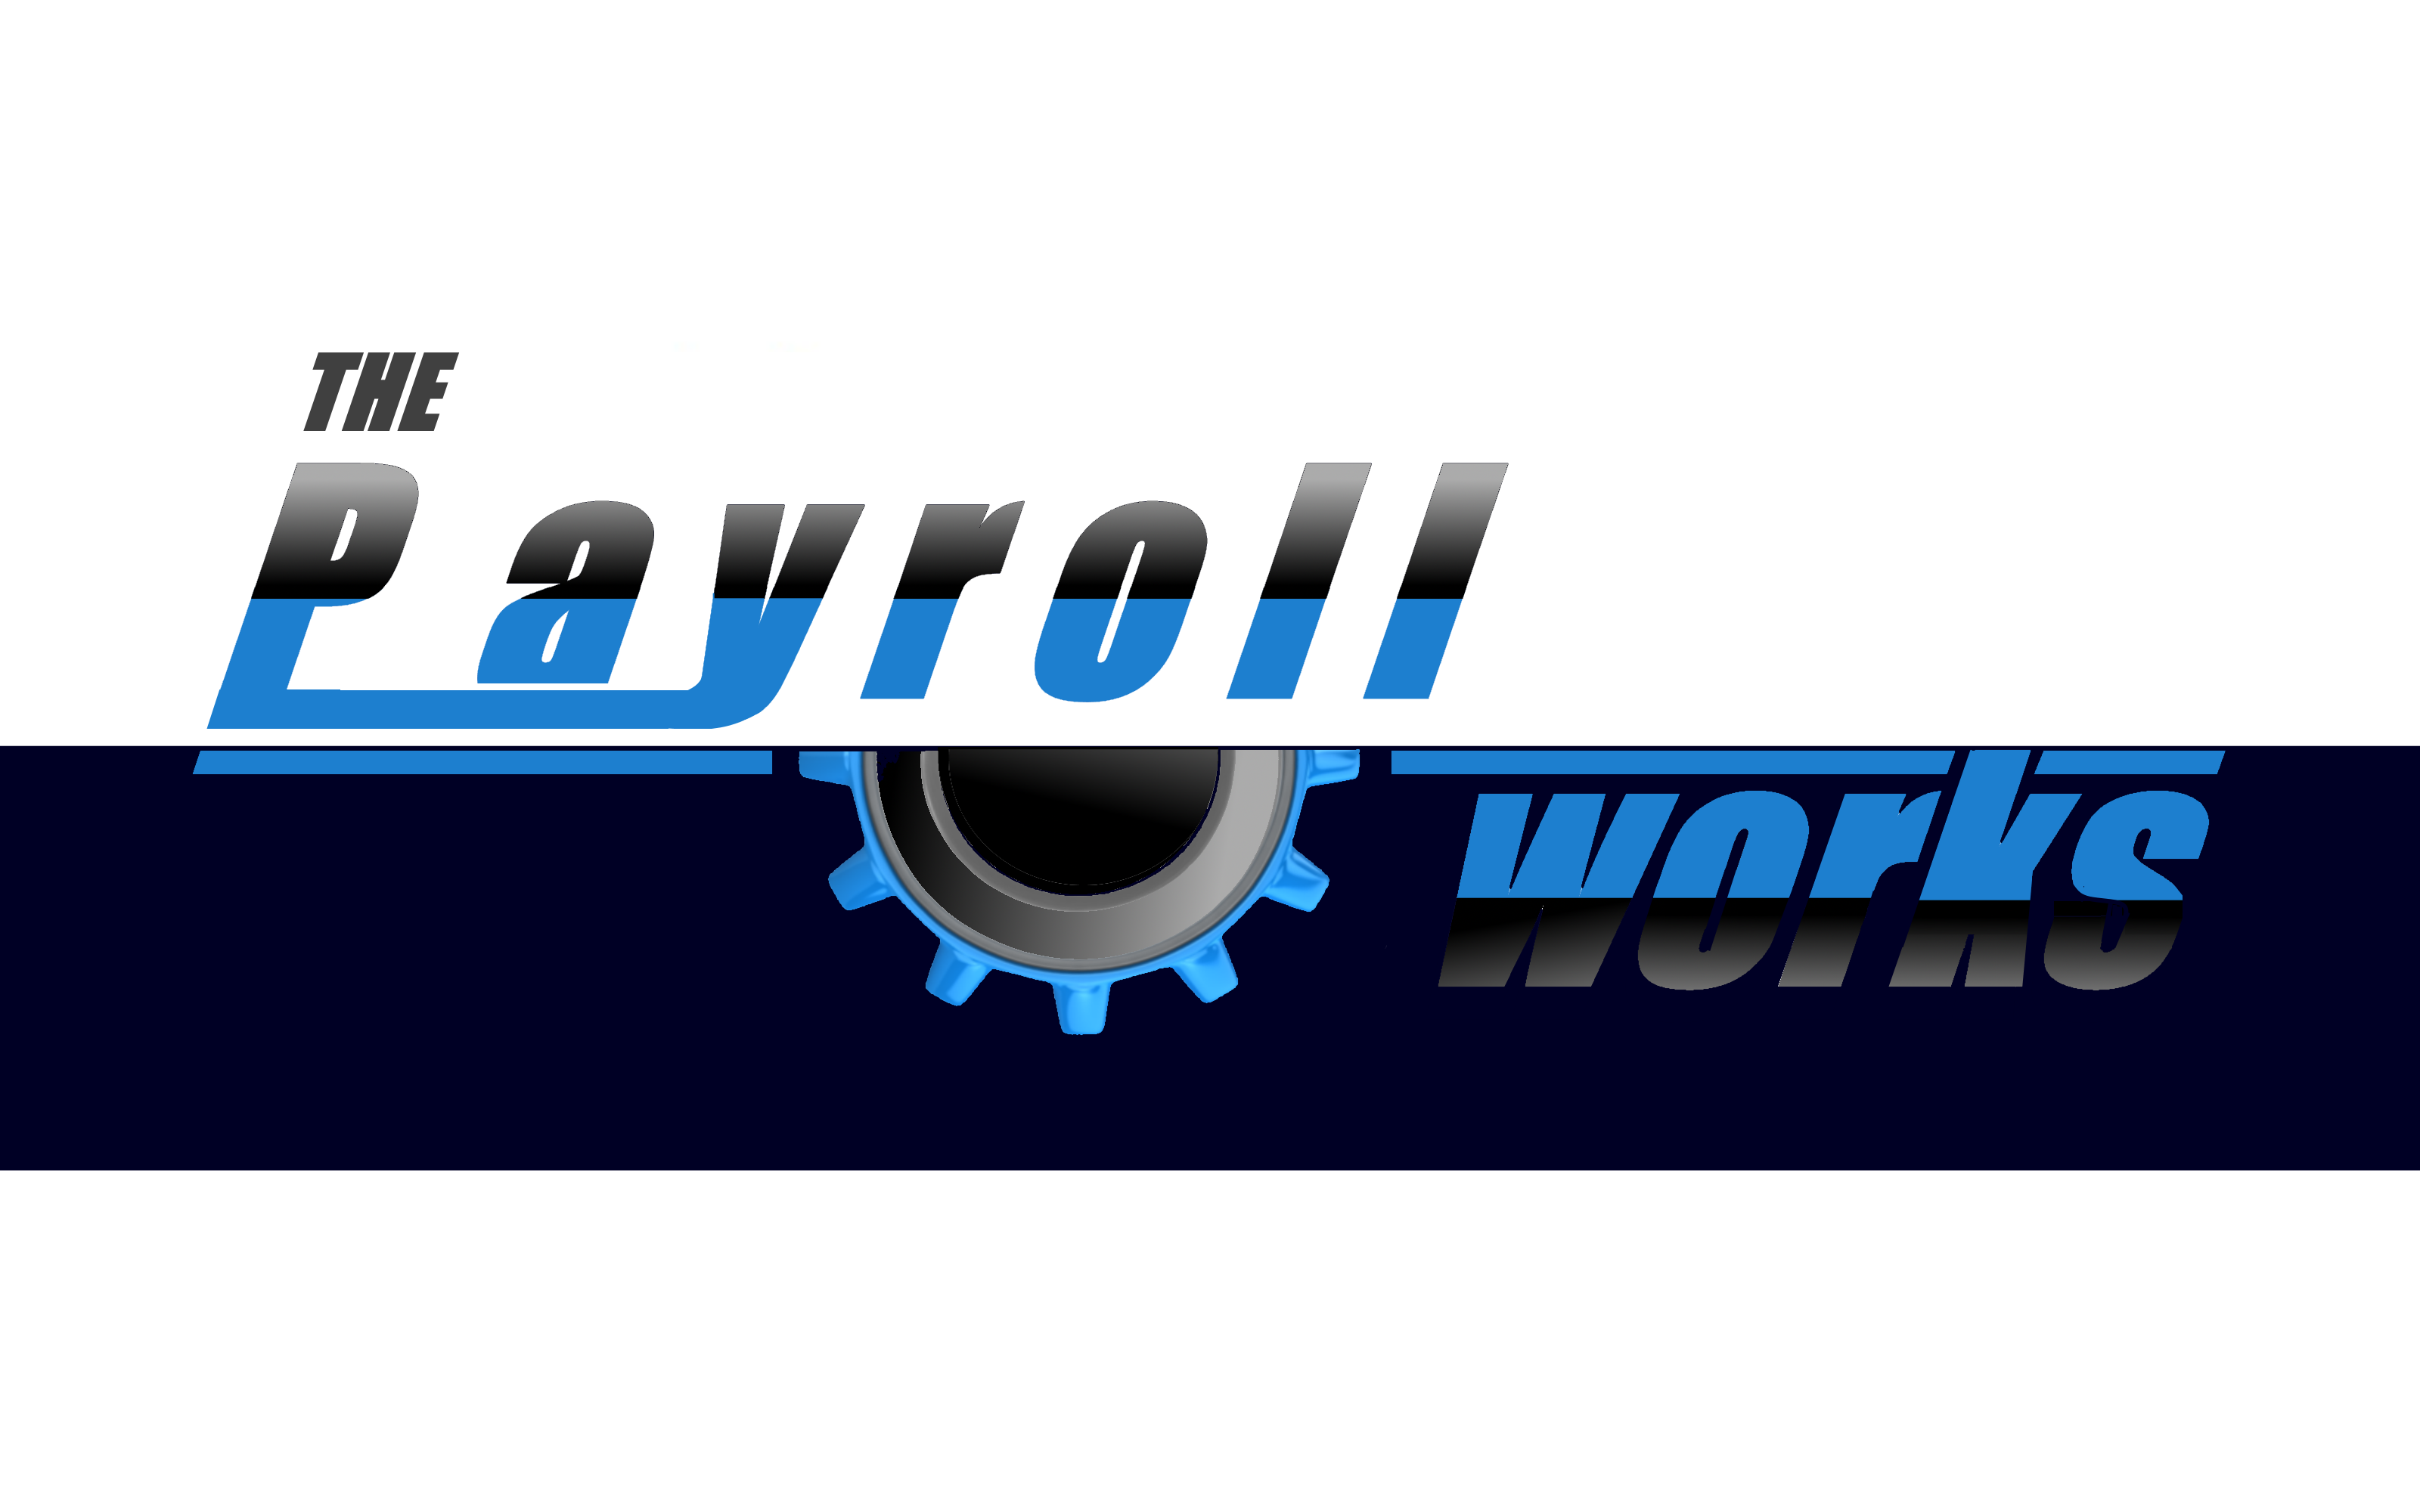 Logo Design by Roberto Bassi - Entry No. 87 in the Logo Design Contest Captivating Logo Design for The Payroll Works.